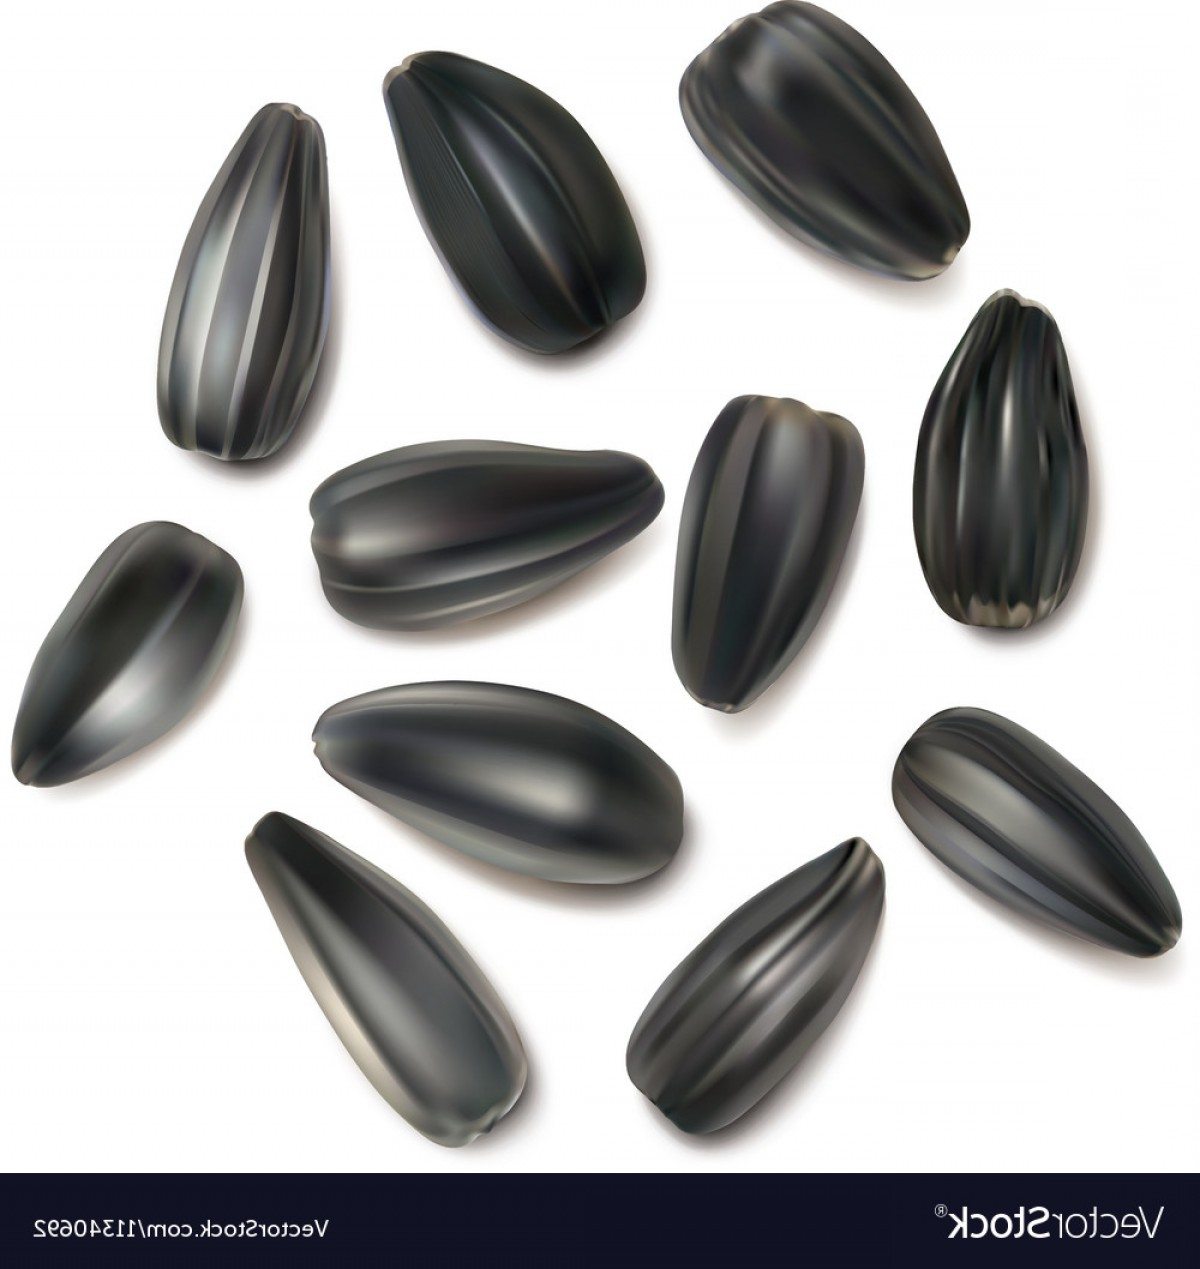 Vector Black And White Sunflower Seed: Sunflowers Seeds On A White Background Vector